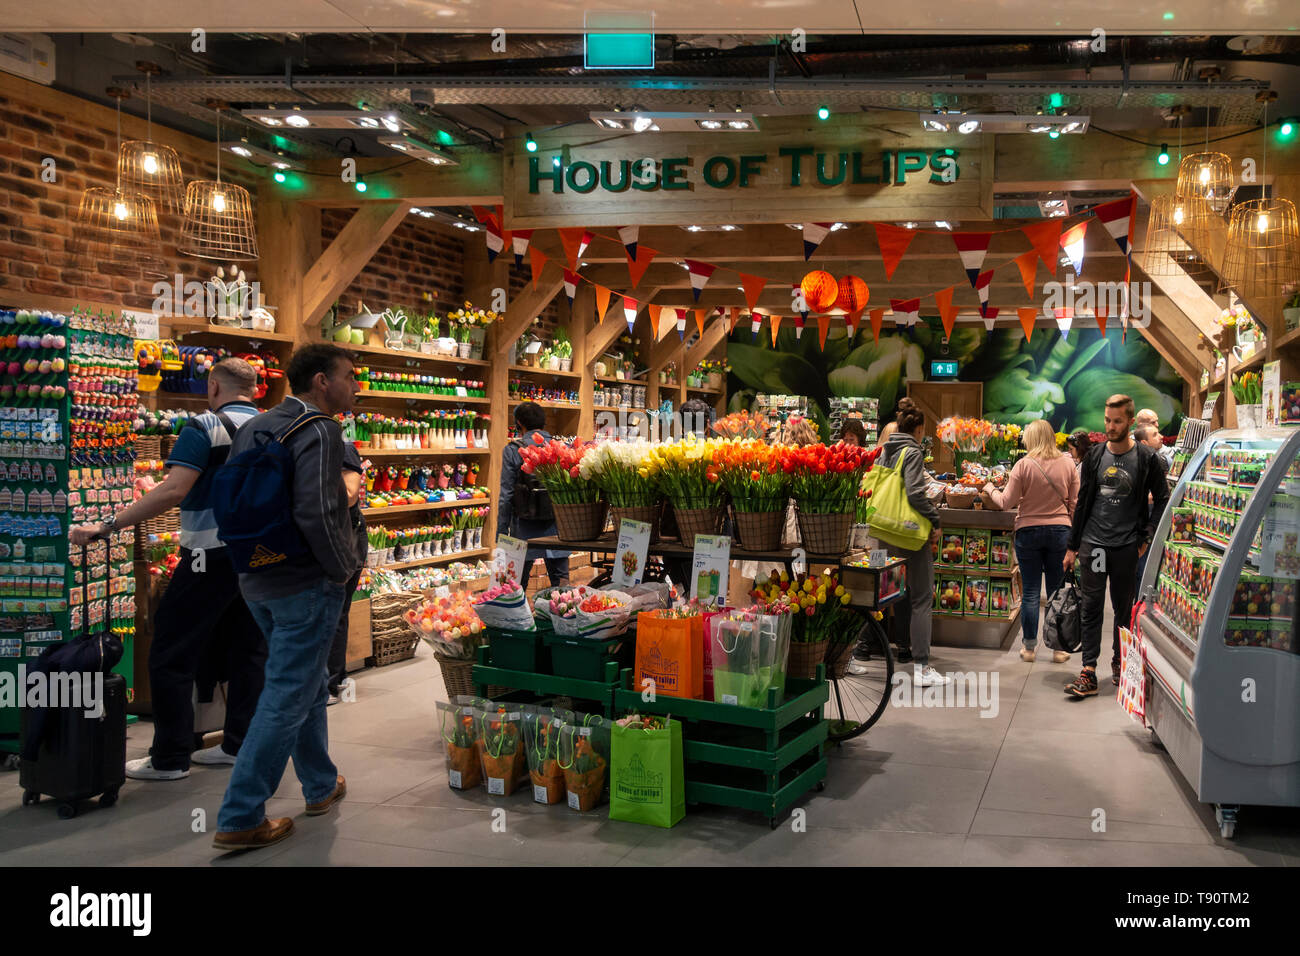 Air travellers browsing House of Tulips, a retail outlet with a Tulip theme, at Schiphol Airport, Amsterdam. - Stock Image